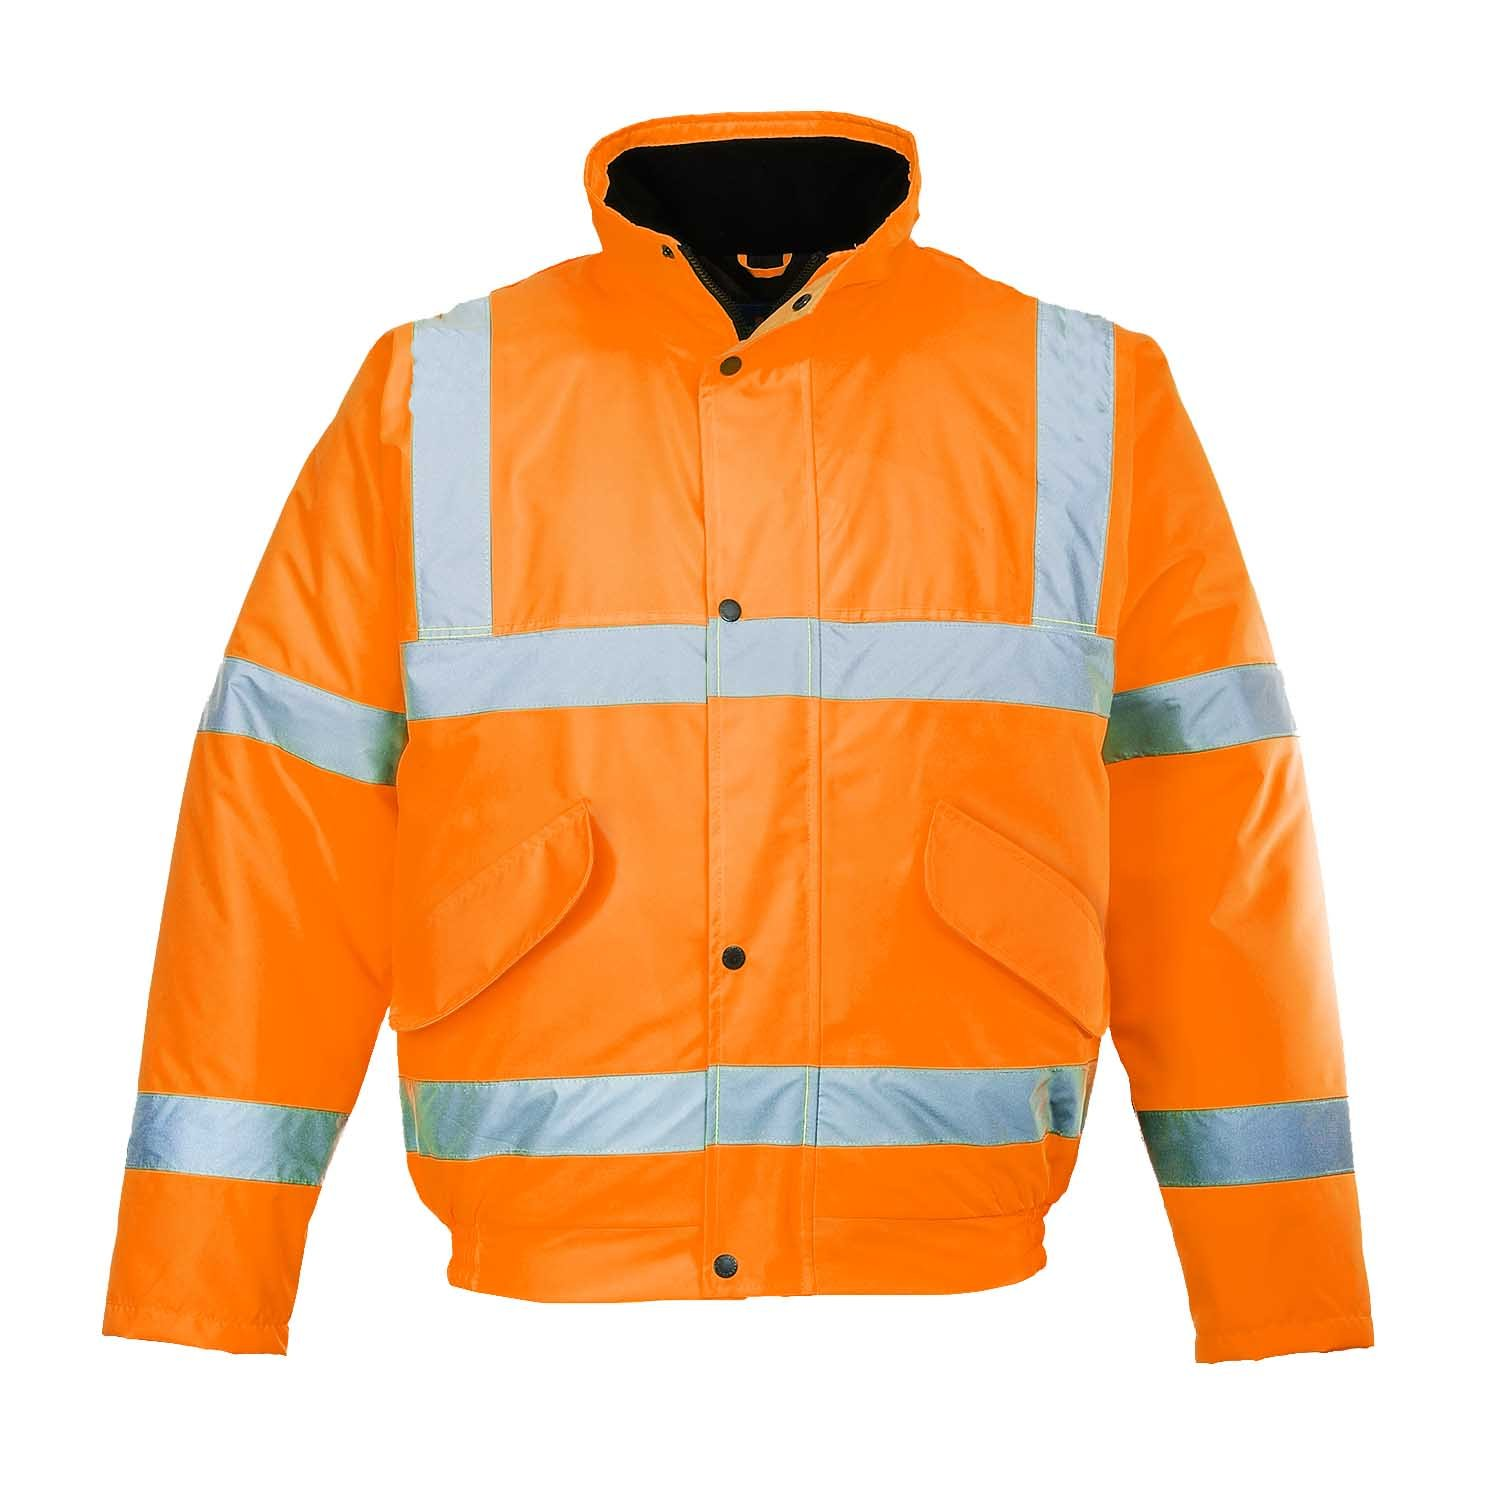 Mens Hi Visibility Orange Work Bomber Jacket Coat Size S to 5XL Coats by SITE KING - HI VIZ VIS RAILWAY ROAD SAFETY